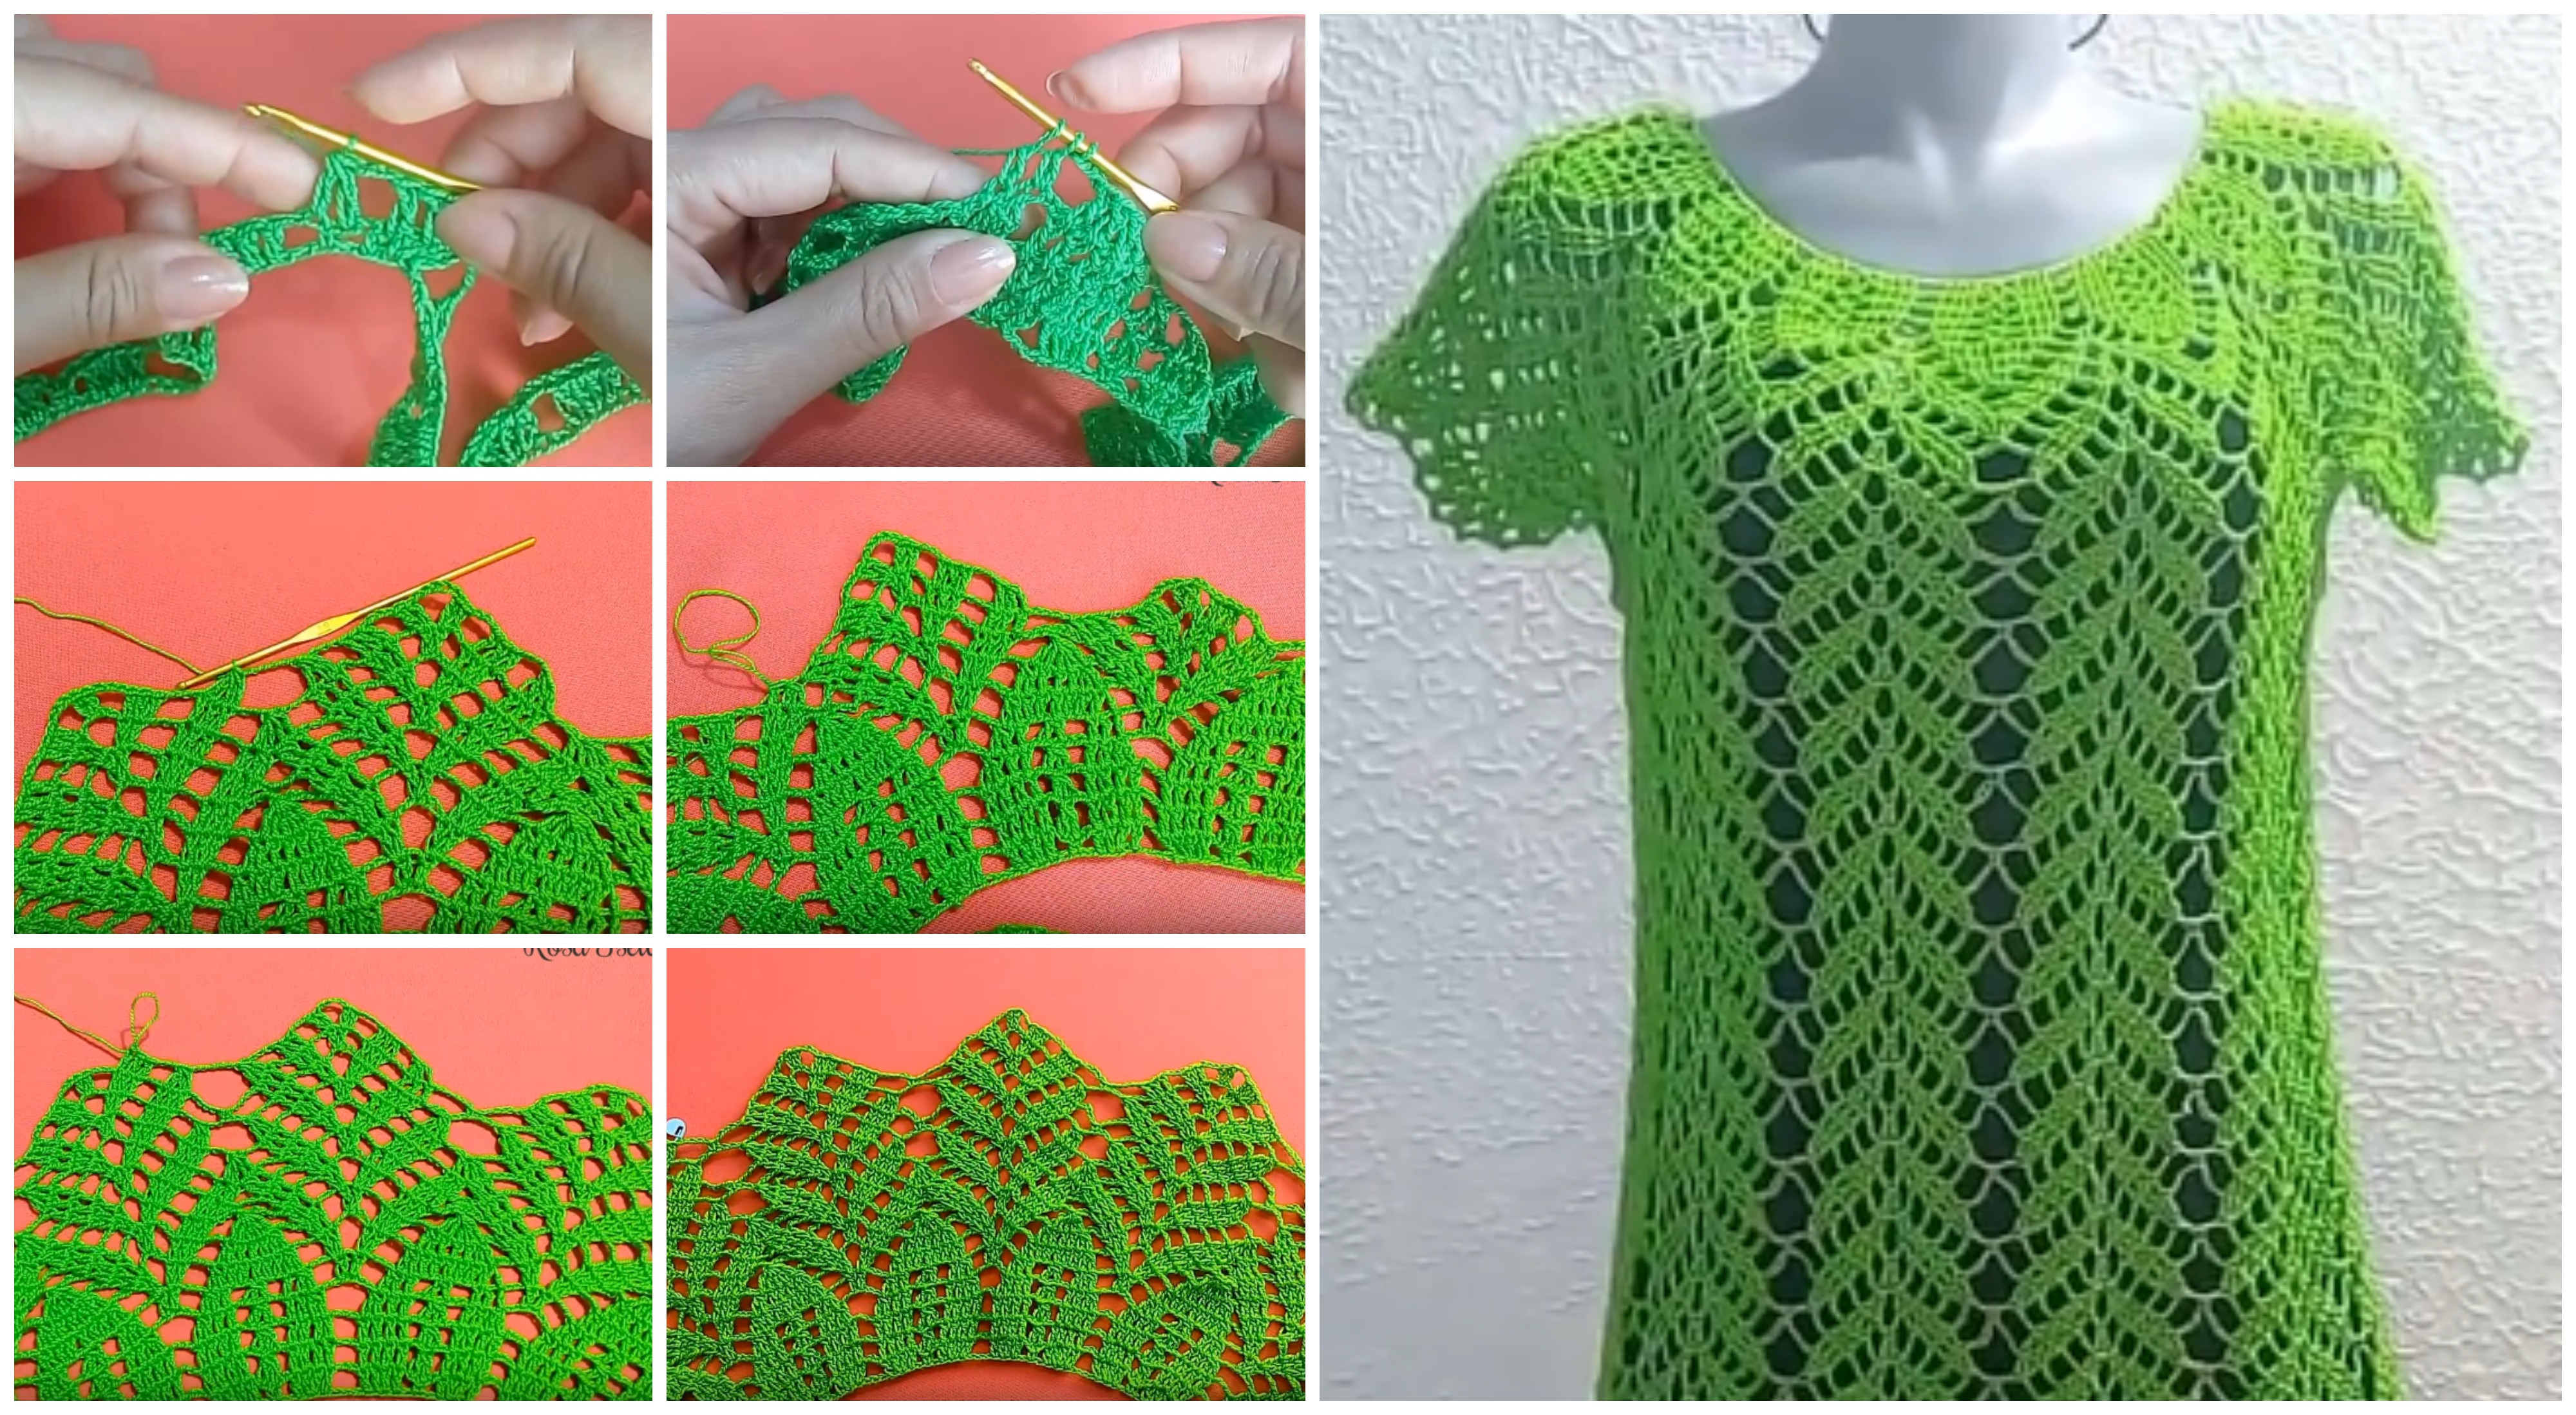 Crochet Business Name Ideas Best Of Crochet Lemon Leaves Blouse Tutorial Ilove Crochet Of Wonderful 48 Images Crochet Business Name Ideas